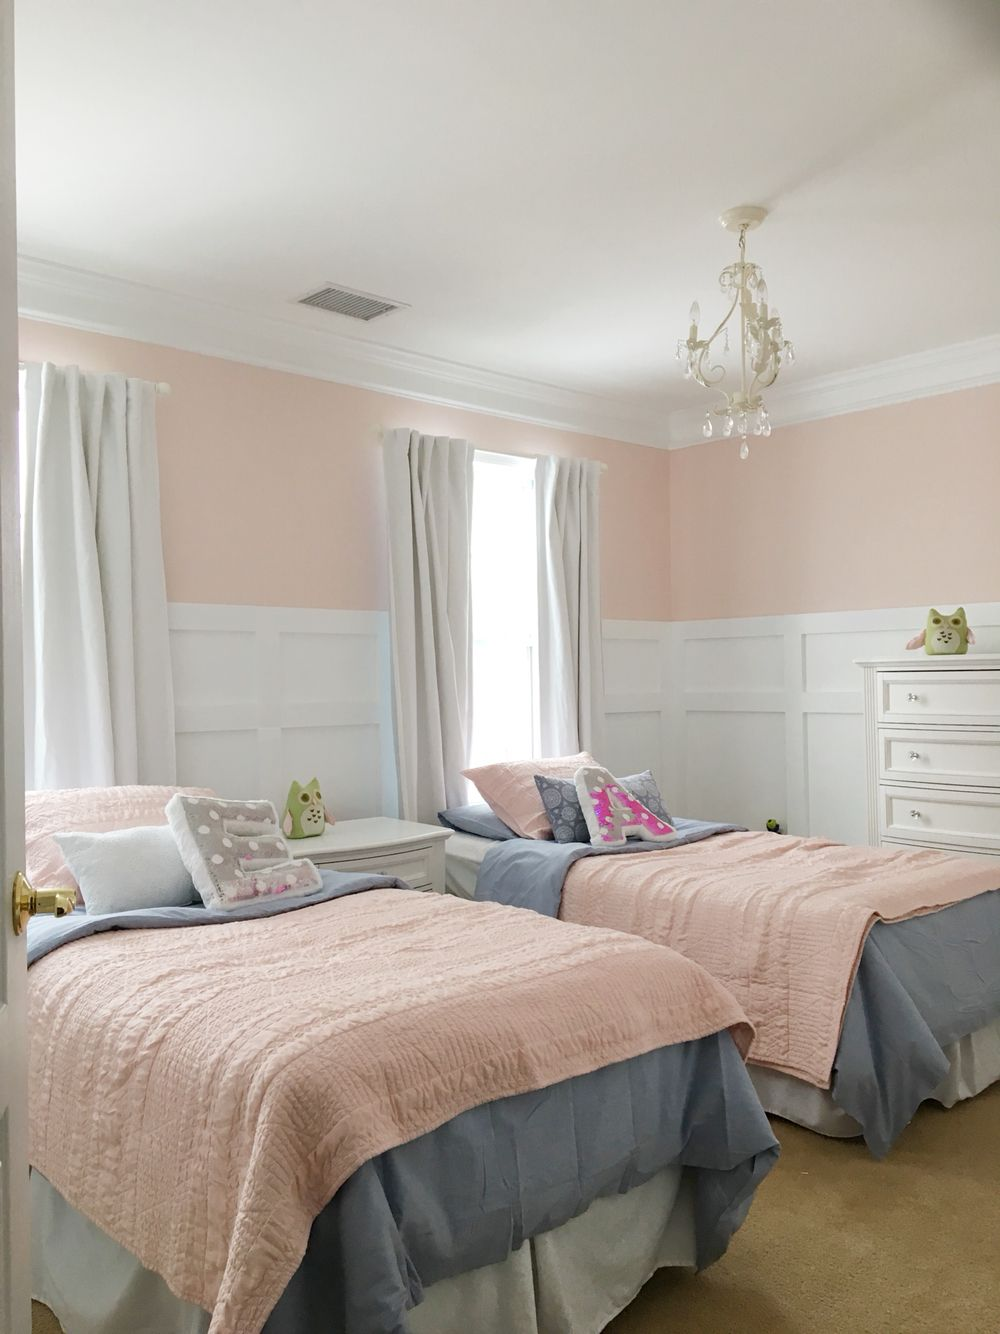 Twins Room Re Do Peachy Blush Pink On The Walls Is Behr Stolen